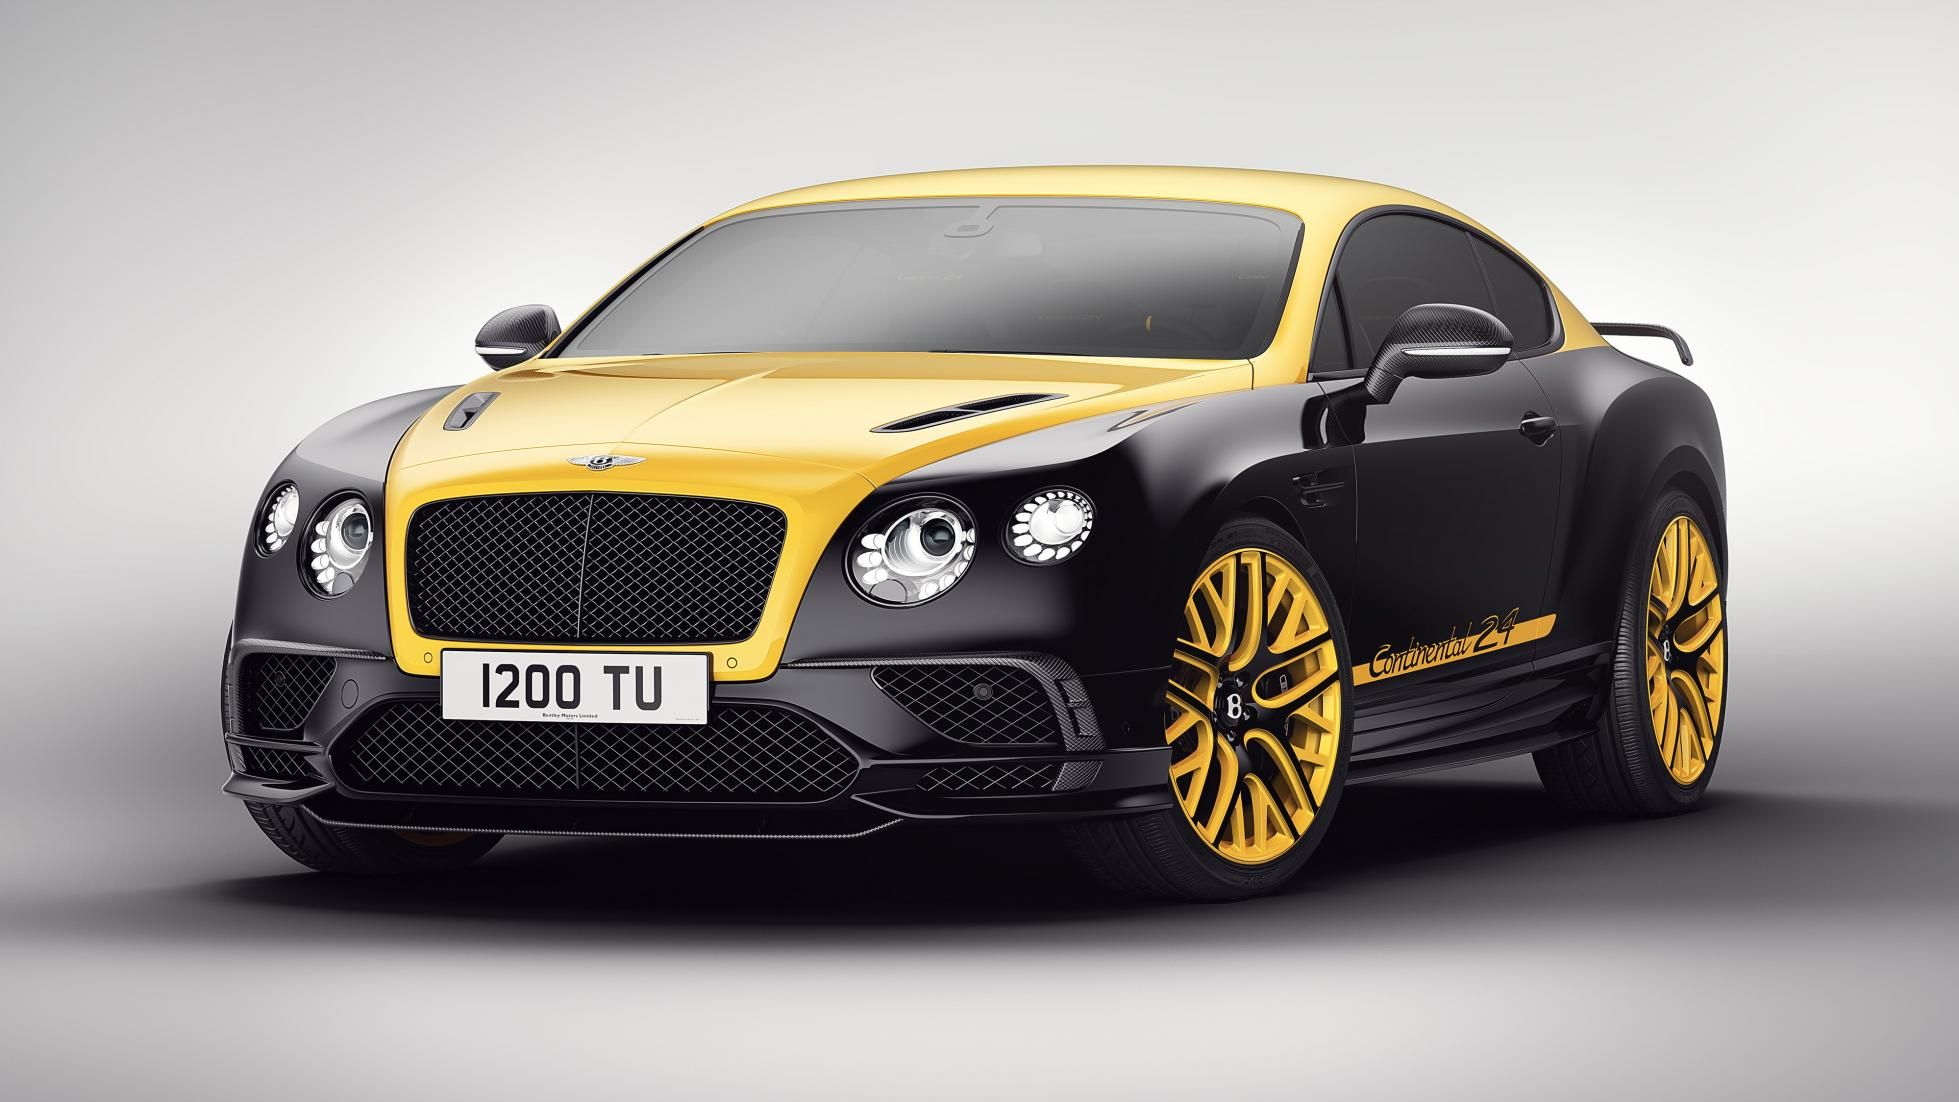 The bentley continental 24 is a modified 700bhp supersports